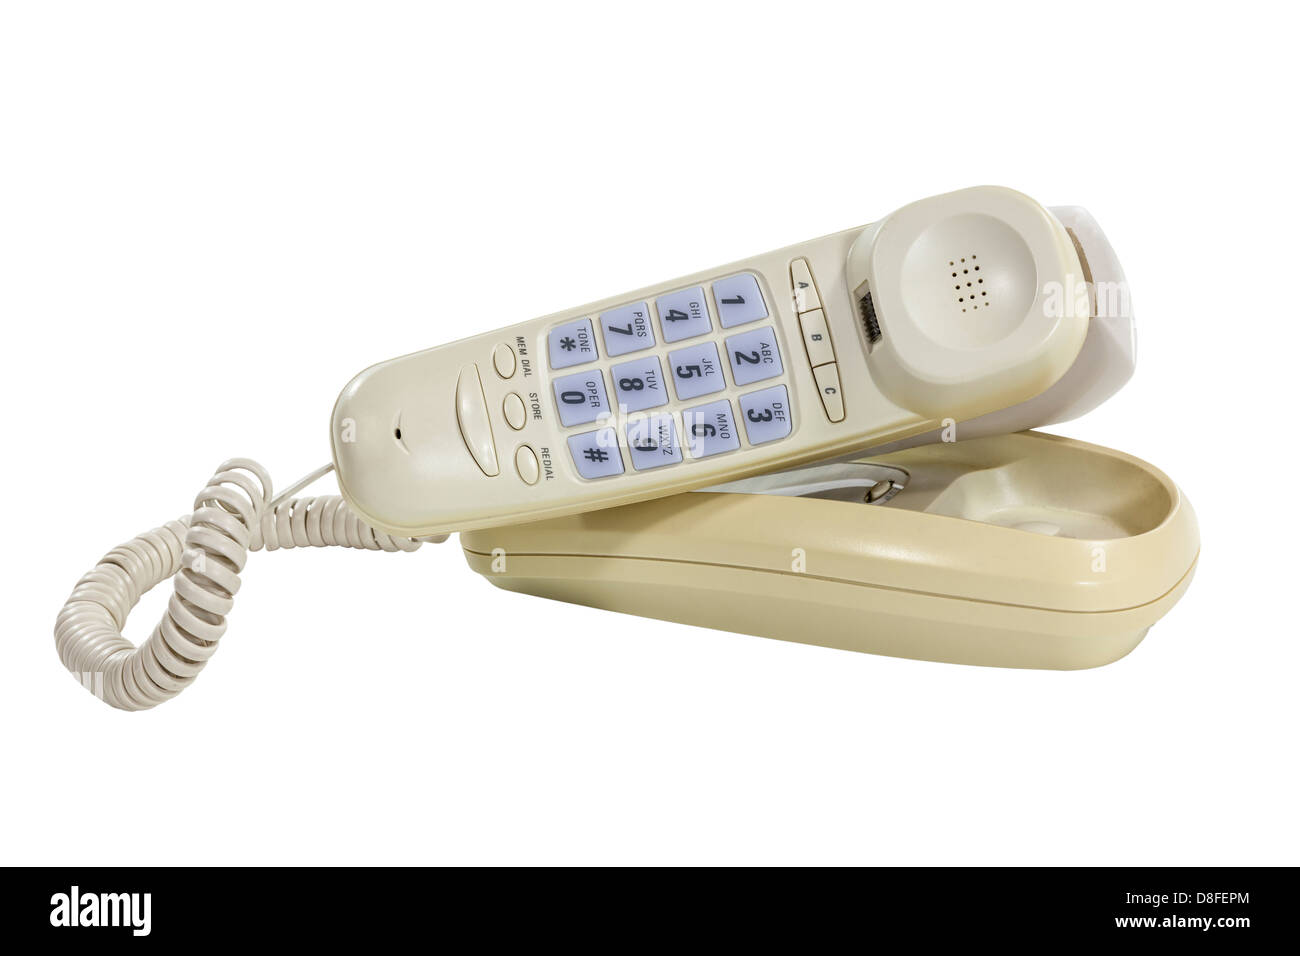 Funky old phone with neck holder attachment and clipping path. - Stock Image